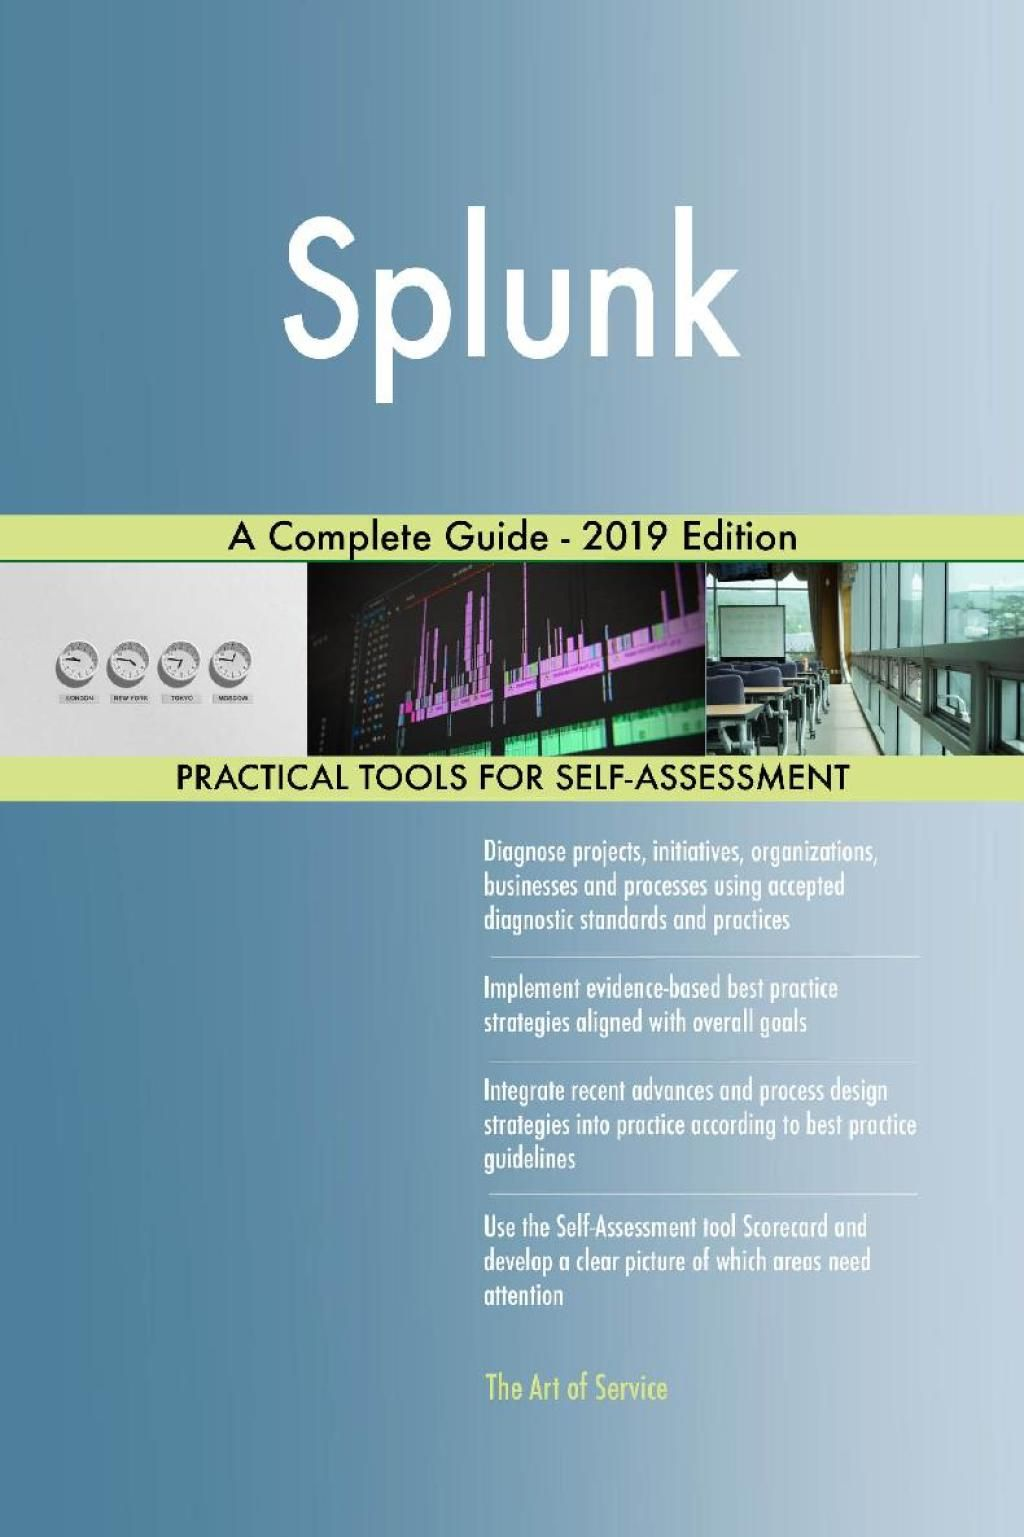 Splunk A Complete Guide - 2019 Edition (eBook) | Products in